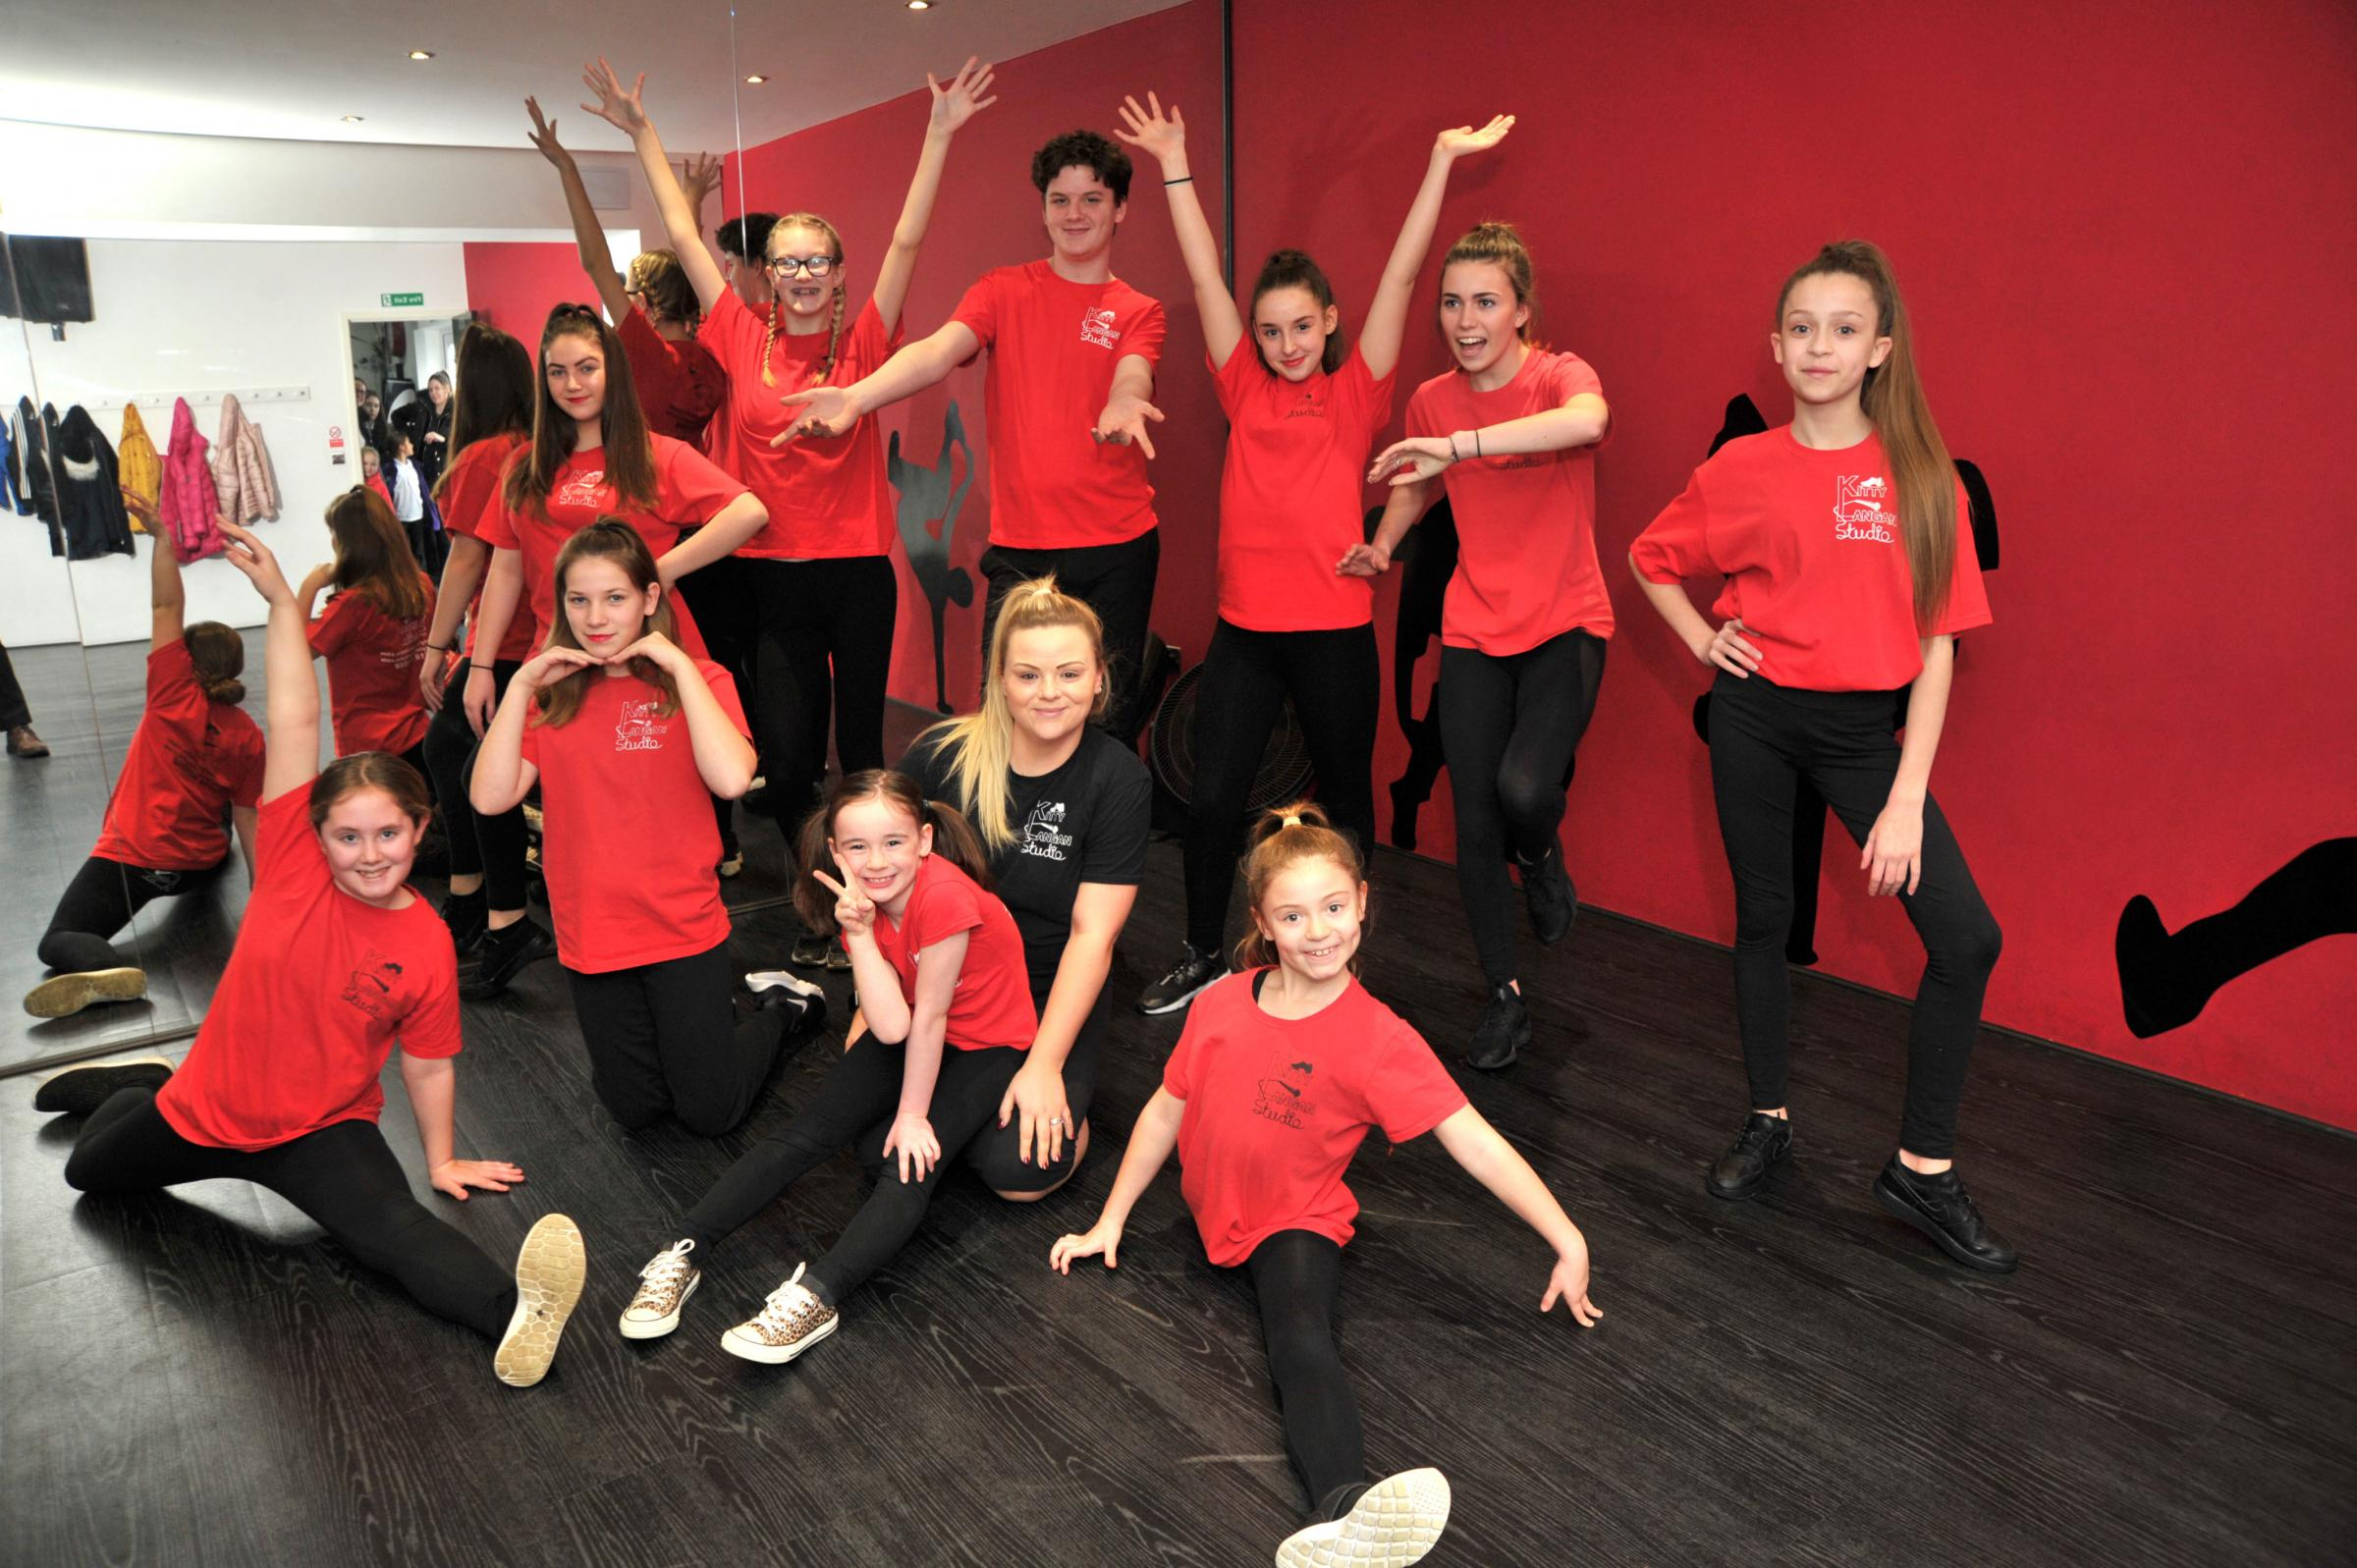 Children from Kitty Langan studio dance school will be performing in the Disneyland Paris parade in May this year.  Pic - Katie Kirby - centre with dance group Date 11/2/19 Pic by Dave Cox